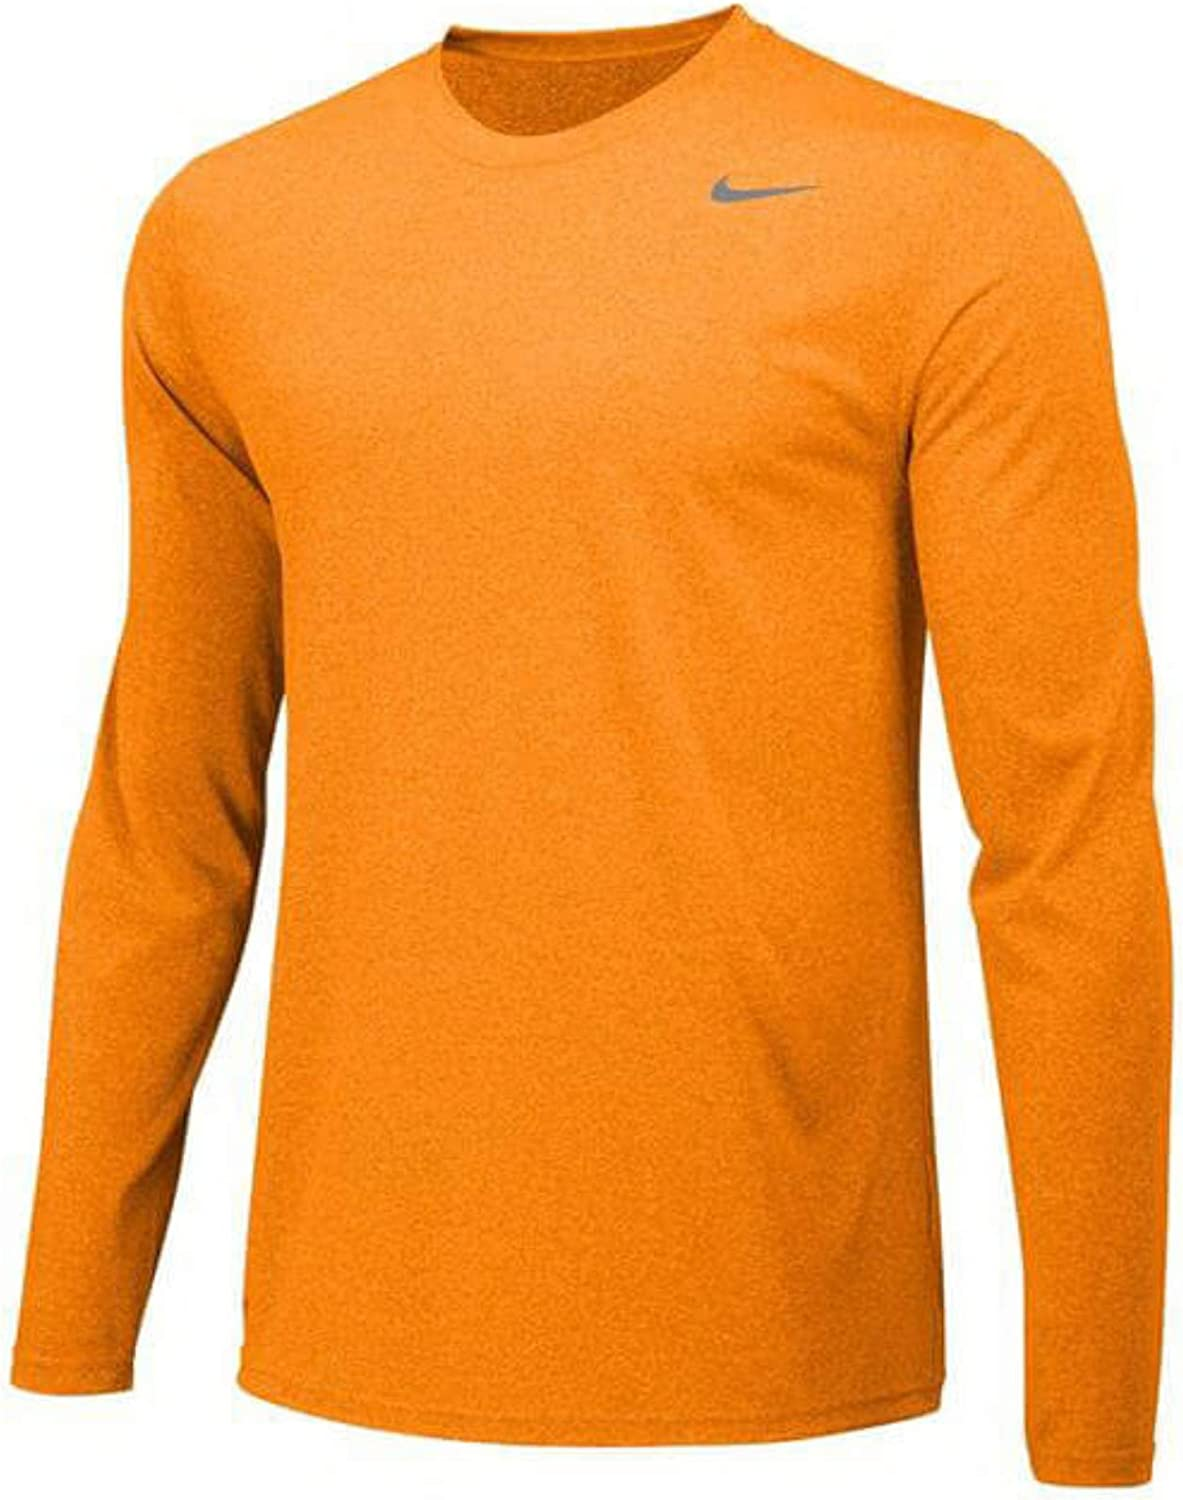 Nike Men's Legend Long Sleeve Tee at  Men's Clothing store: Athletic Shirts